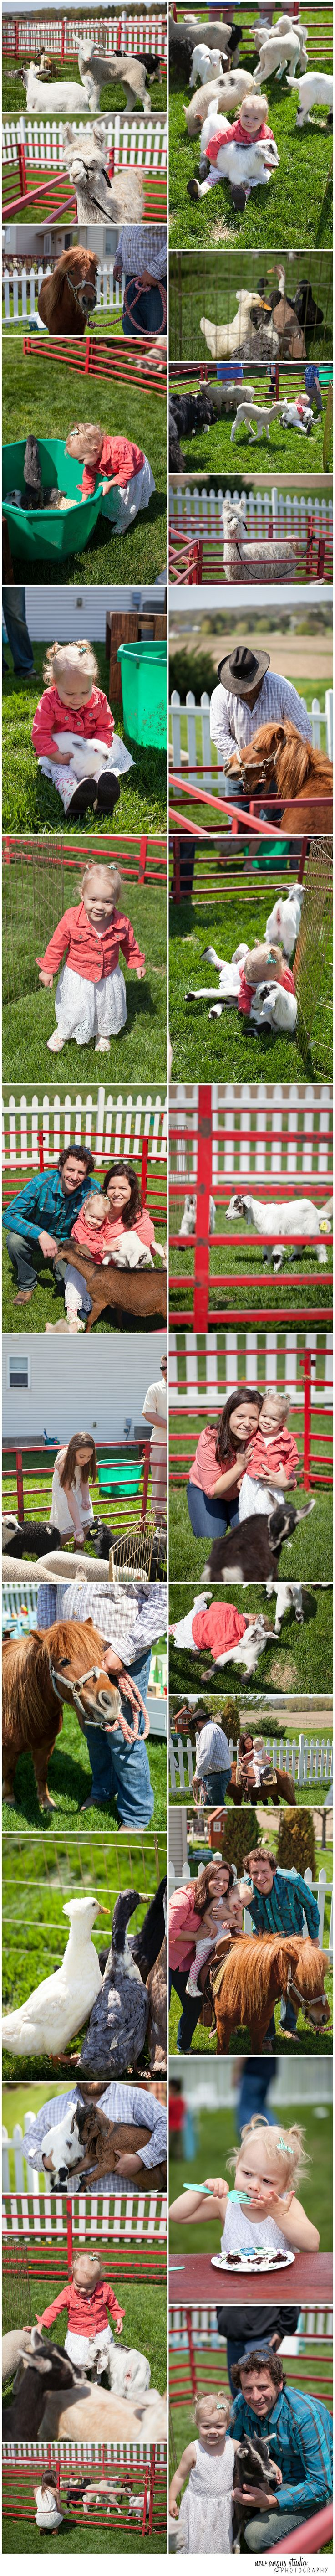 Girly Petting Zoo / Farm Themed birthday party, 2 year old birthday